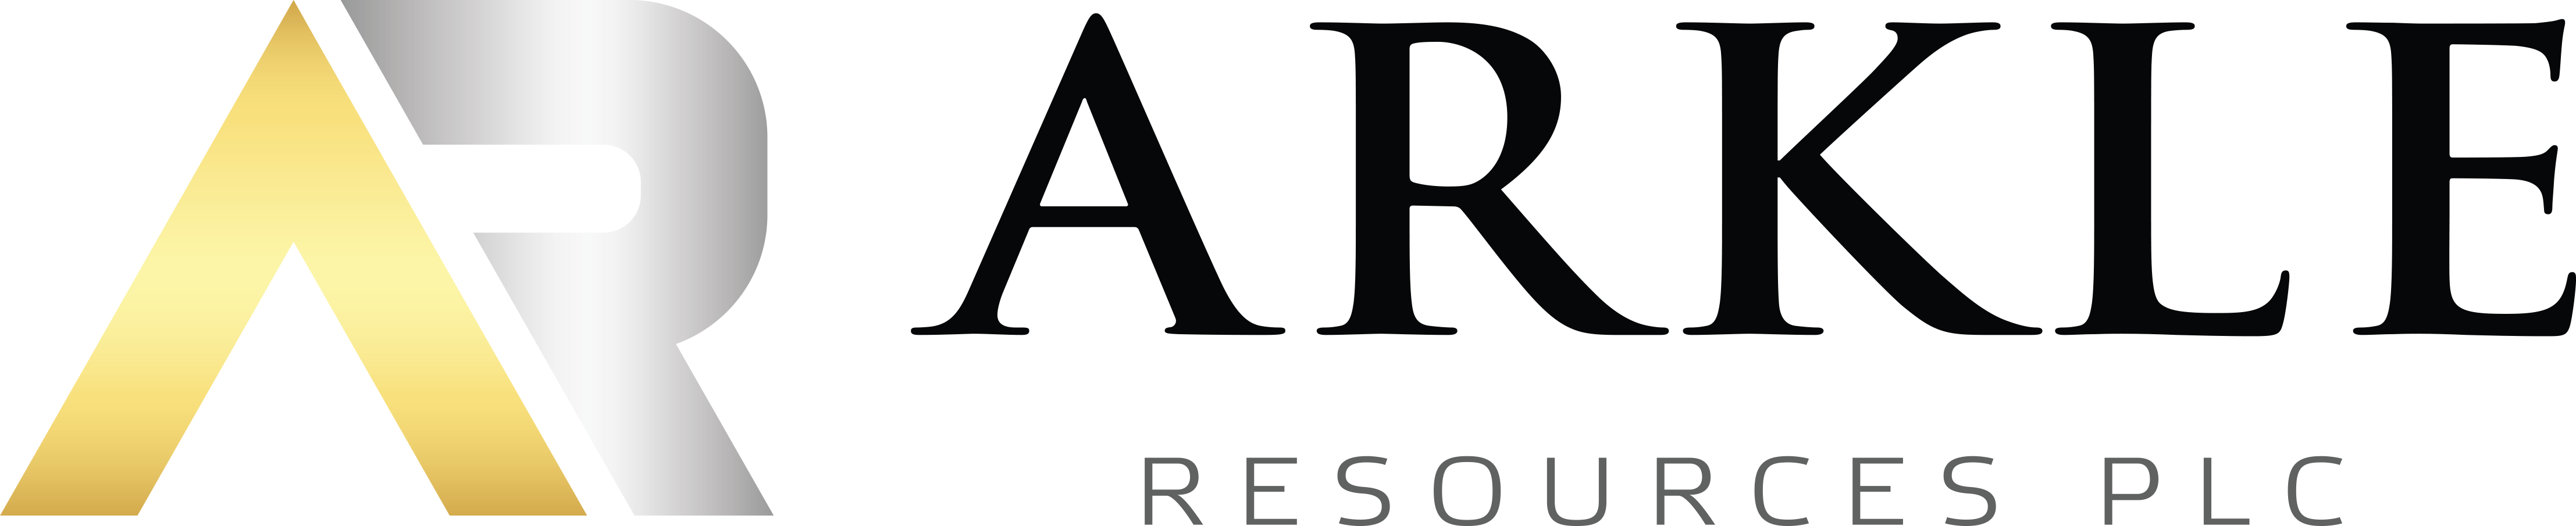 Arkle Resources PLC Logo